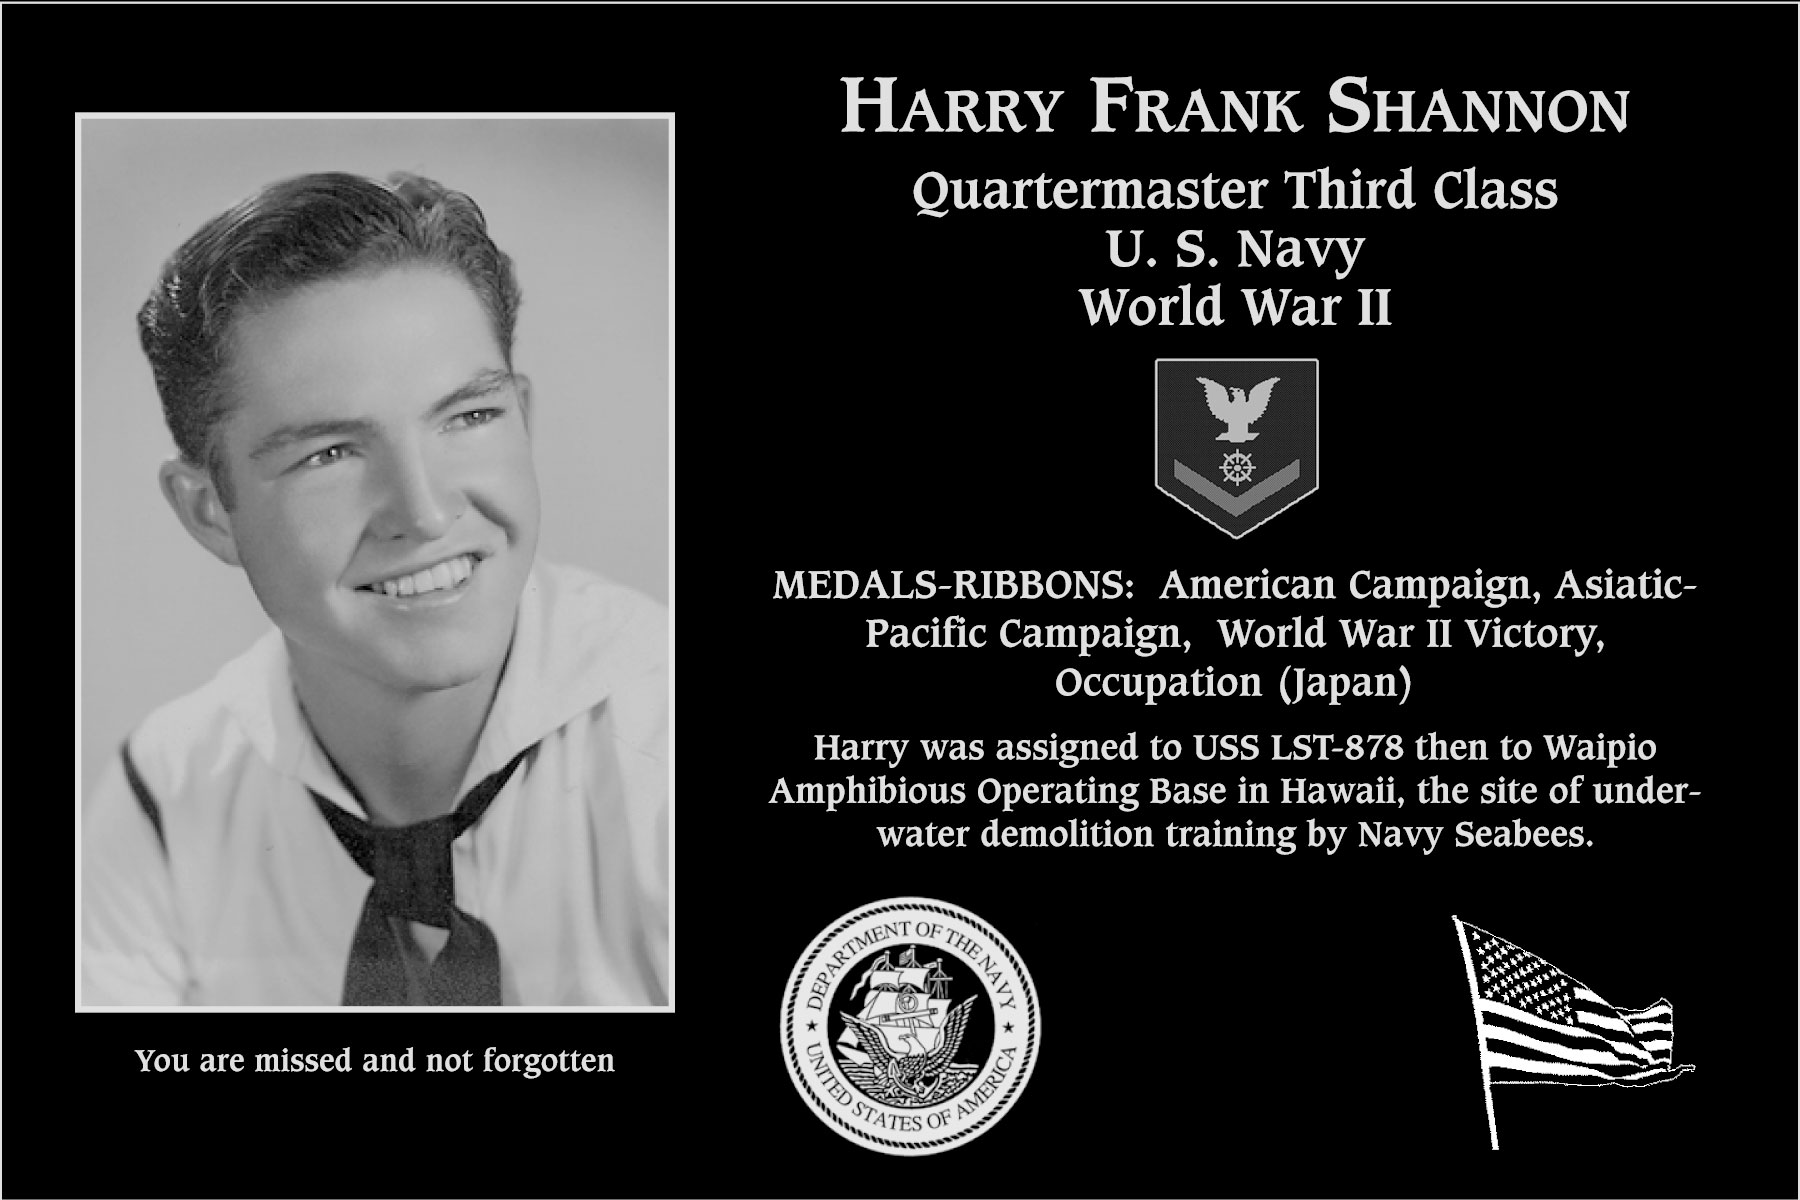 Harry Frank Shannon